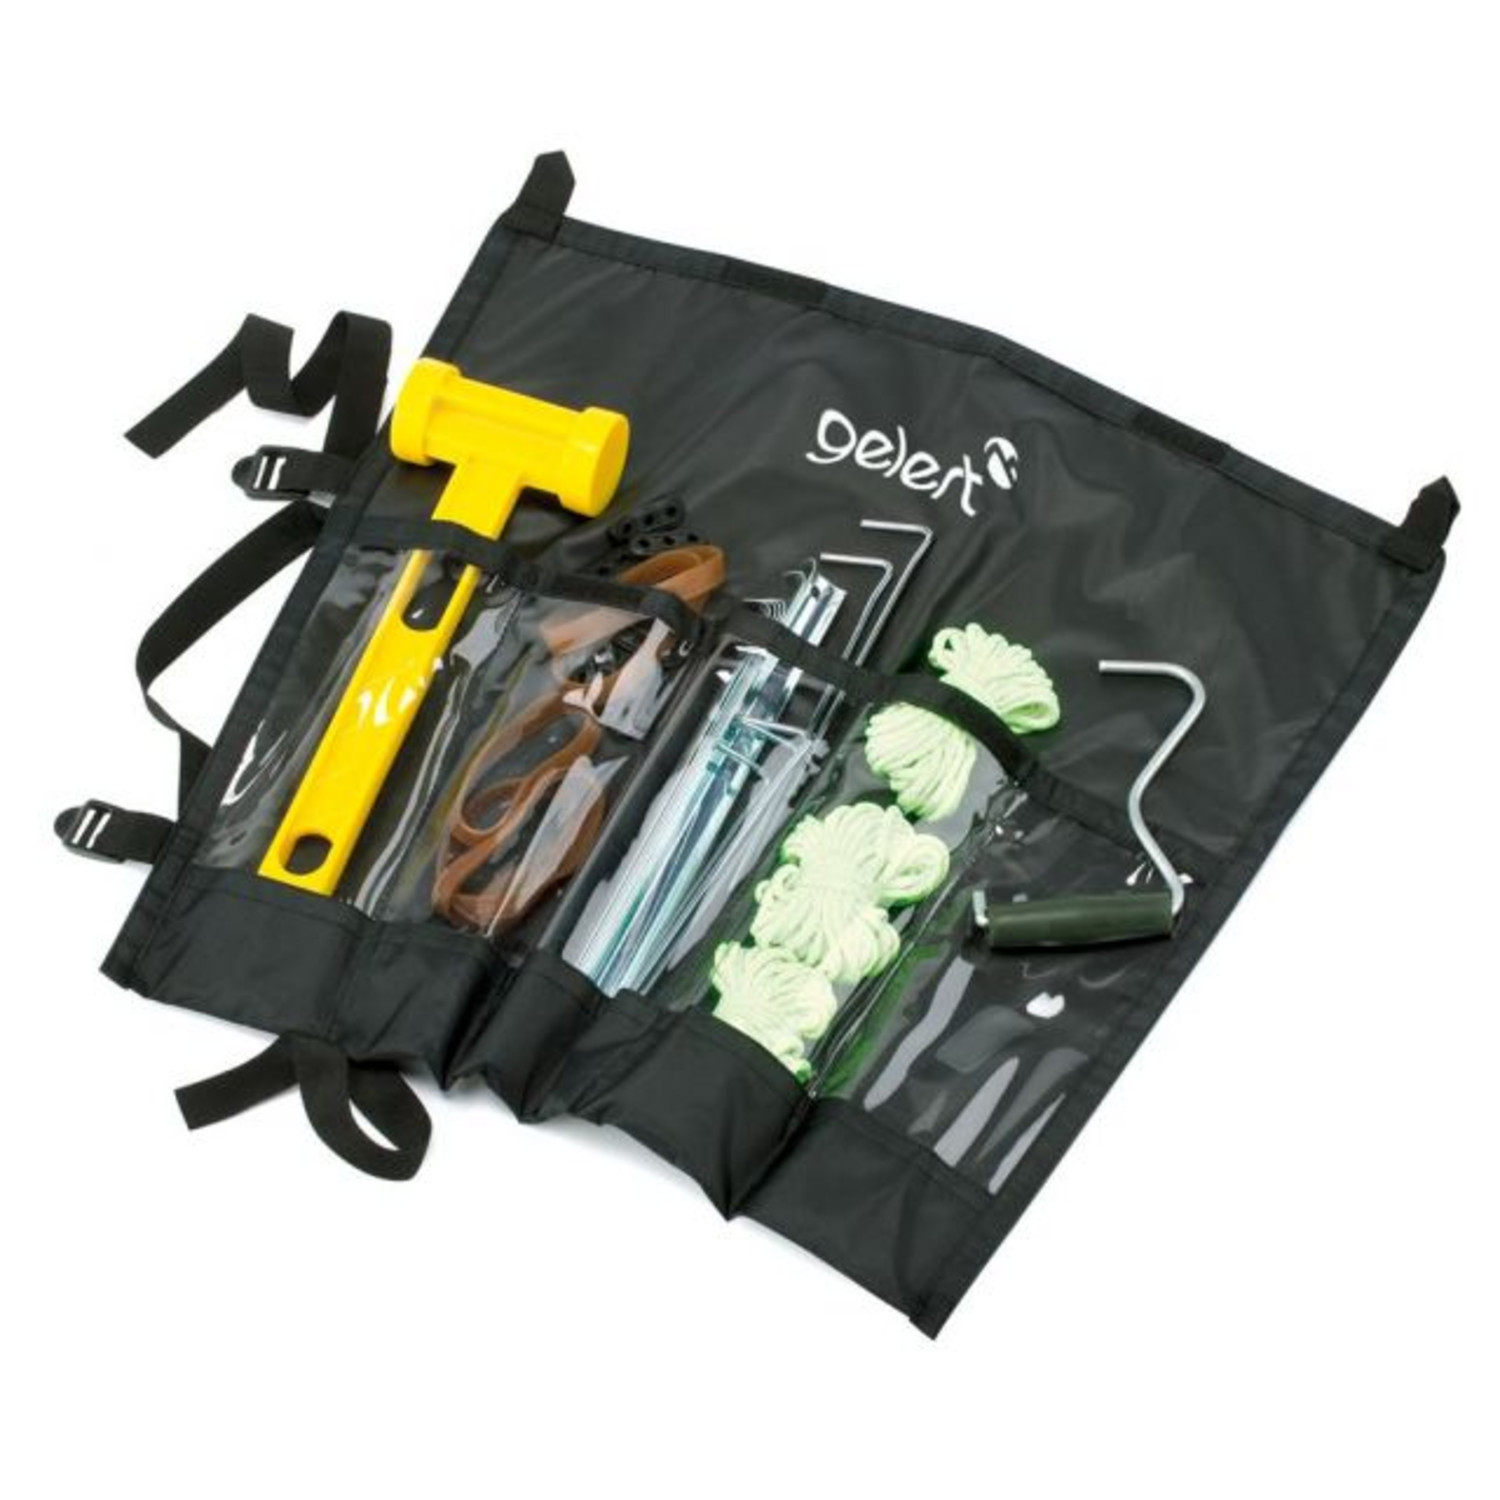 Gelert Tent Accessories Kit